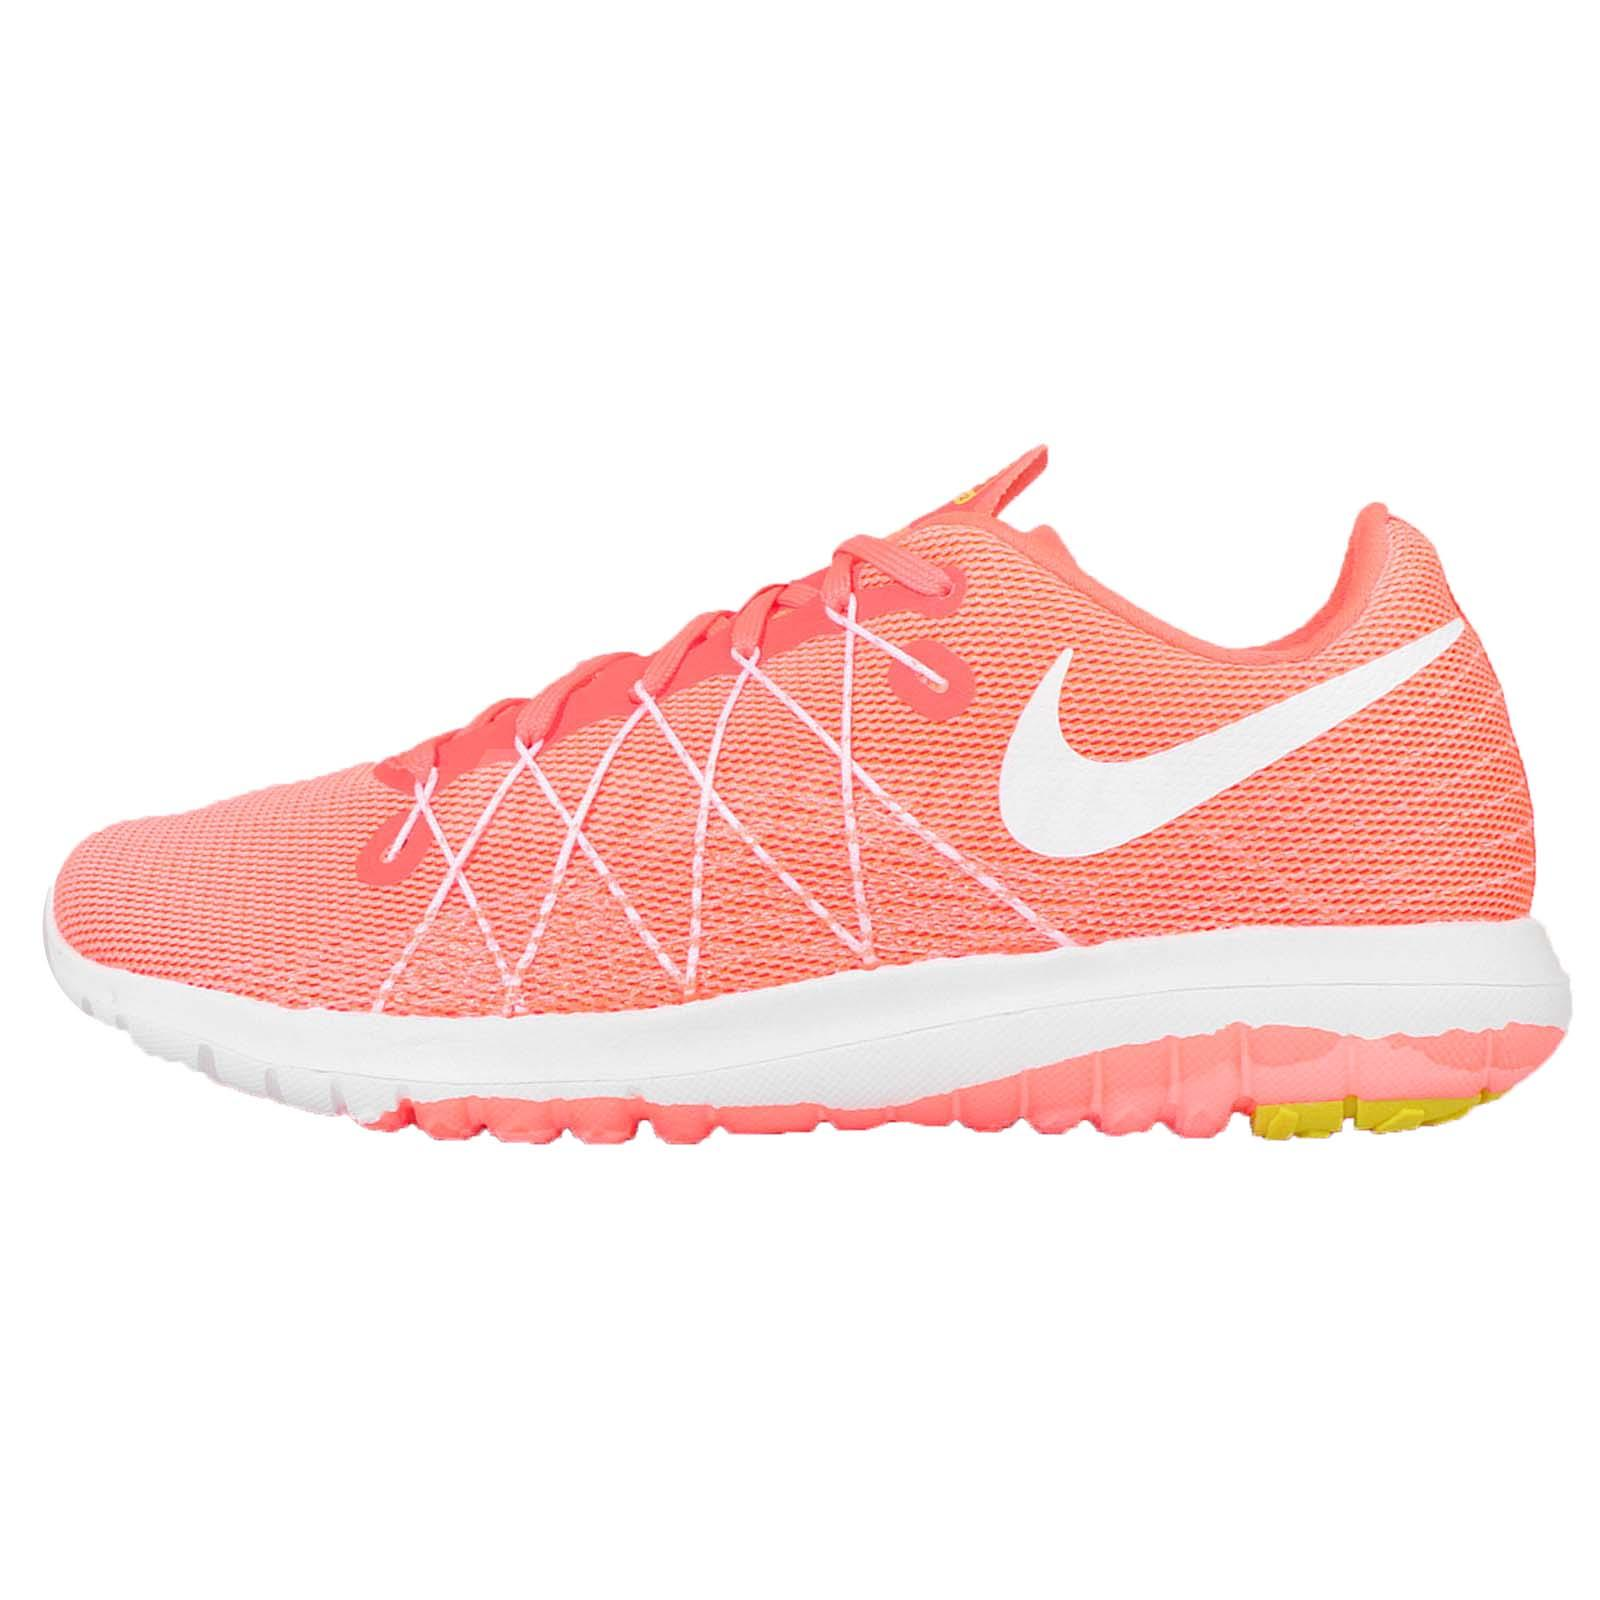 Nike Flex Fury Running Shoes Pink Amazon